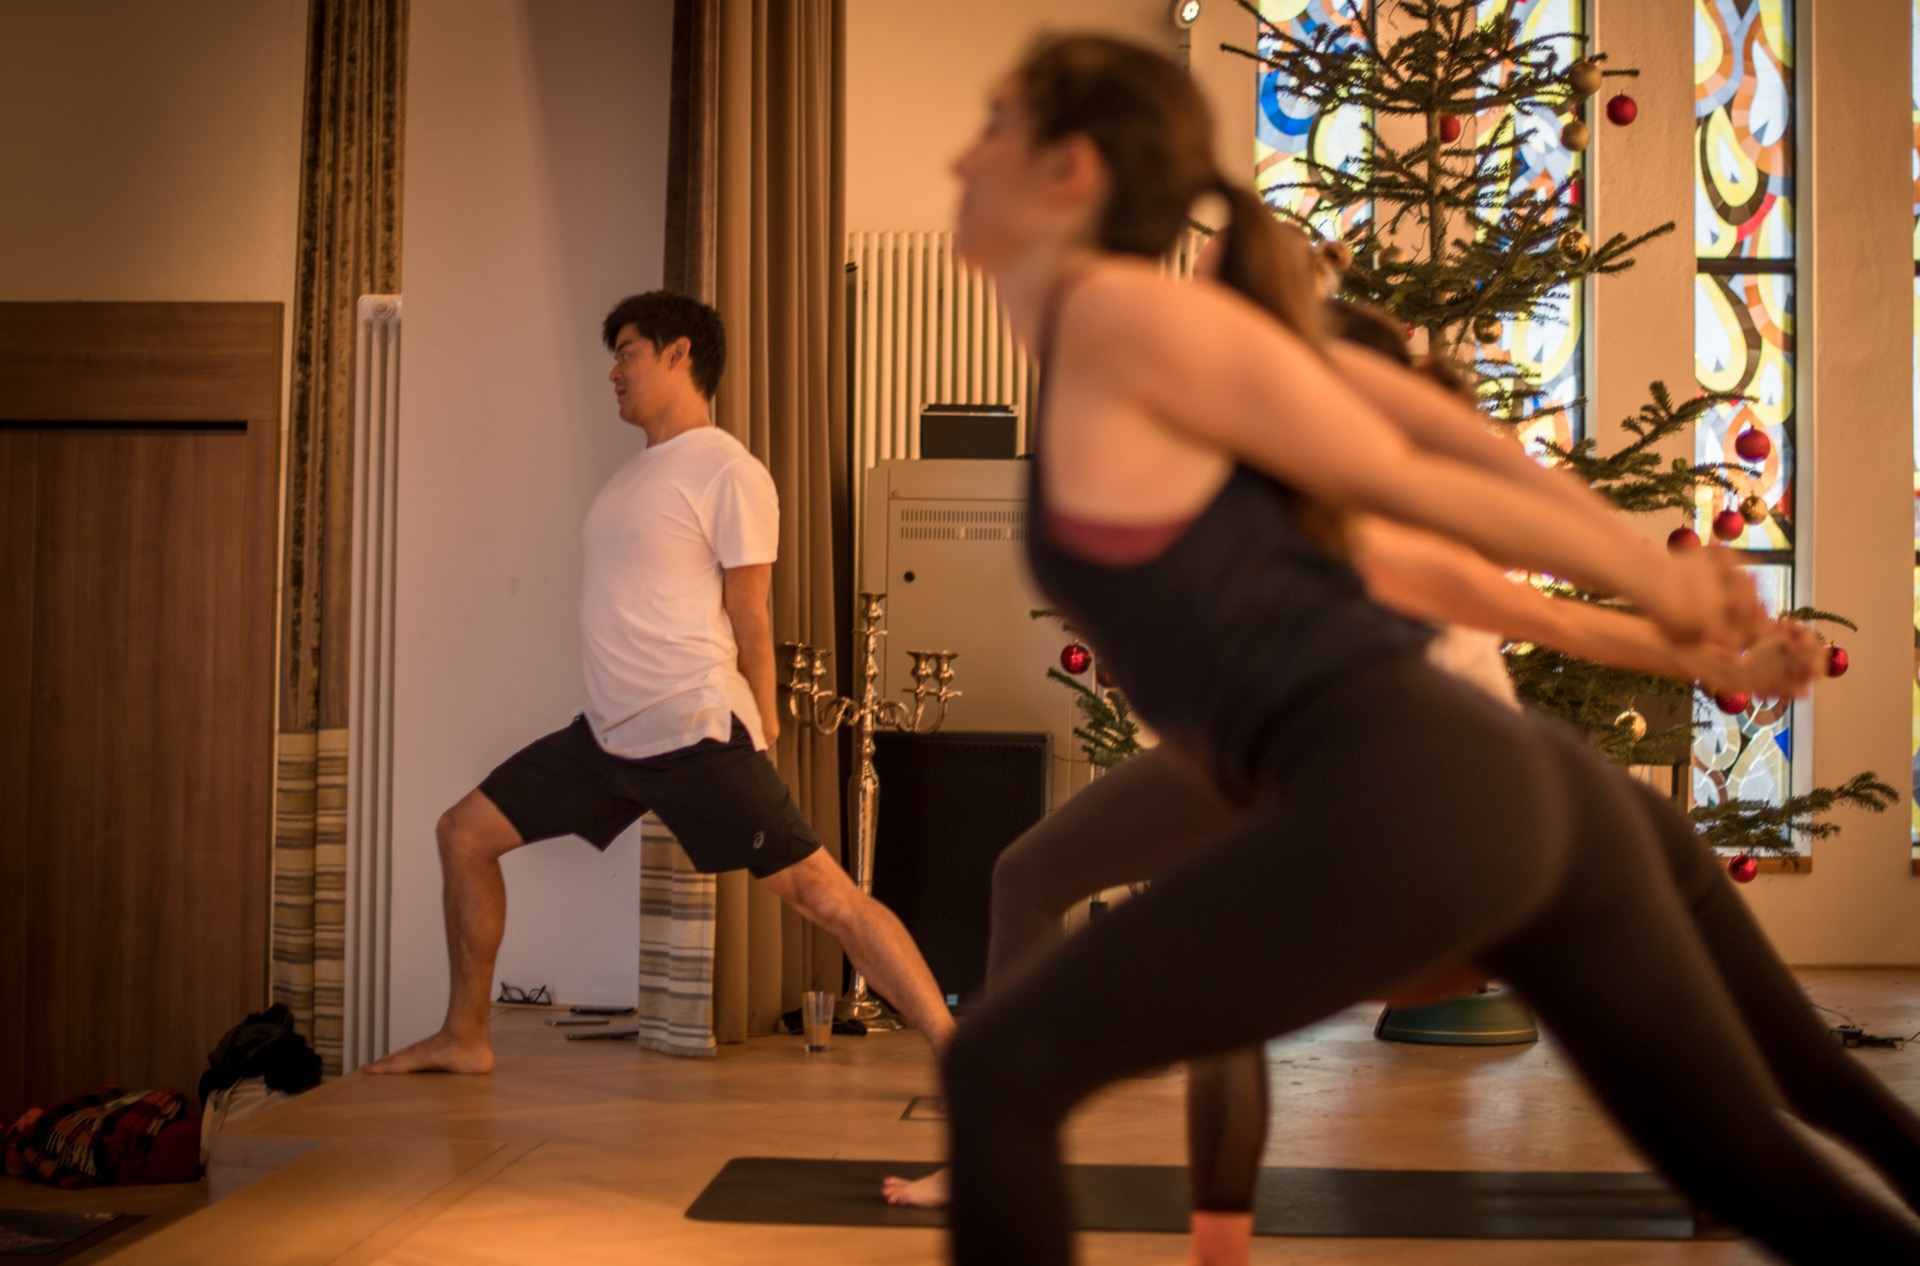 A-New-Beginning-Hie-Kim-Yoga-Retreat-Alina-Matis-Photography-023 - Hie Kim Yoga - Yoga Retreat - Yoga Workshops und Reisen